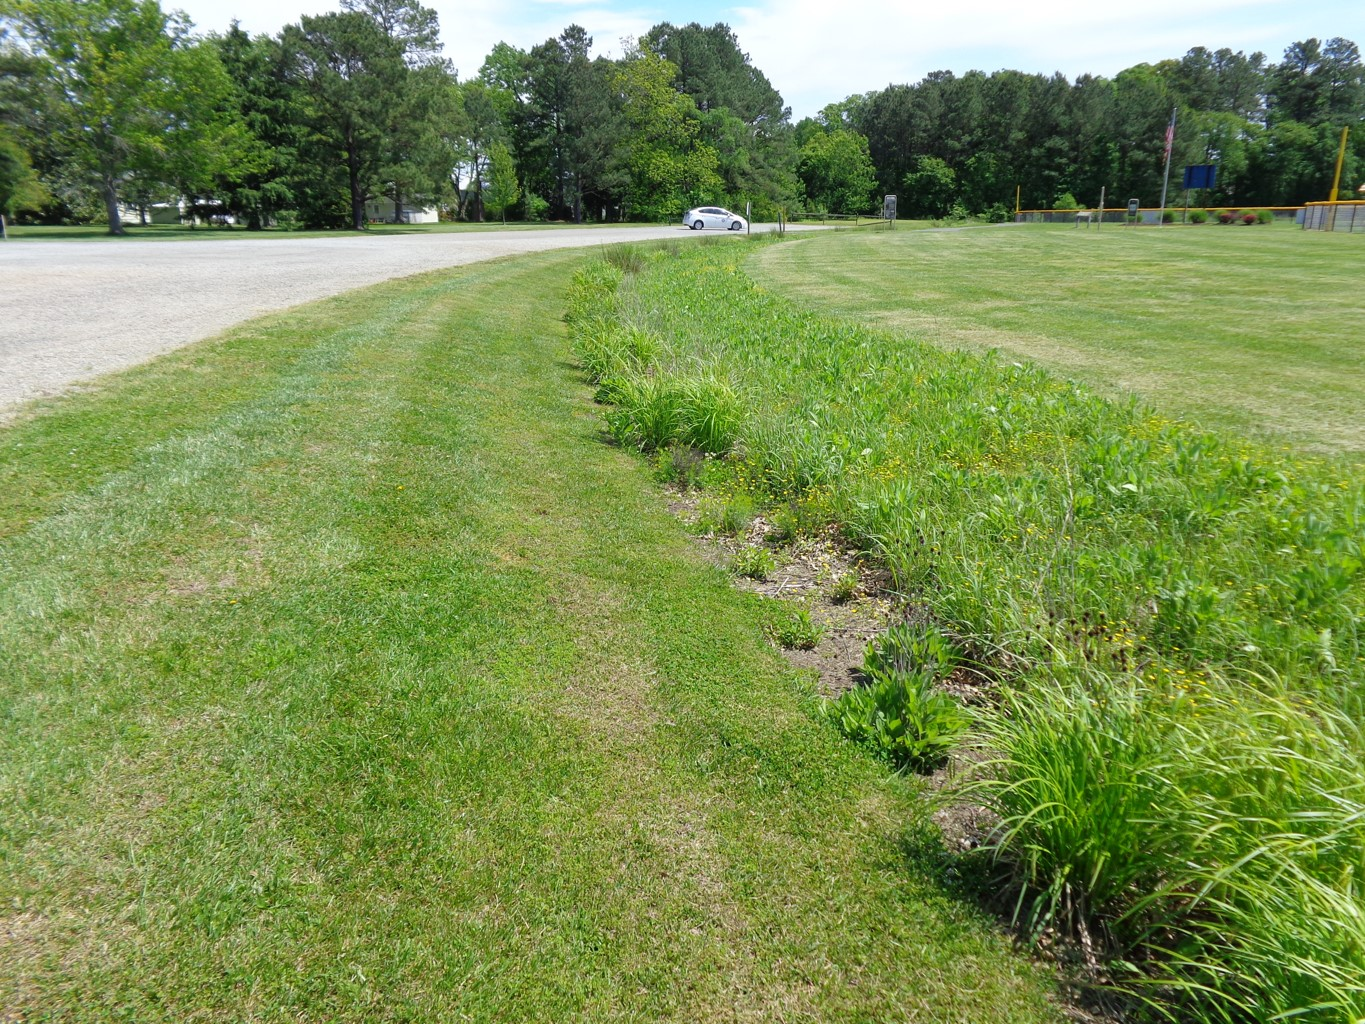 [Webcast] Roadside Ditch Management Guidance: Part 2